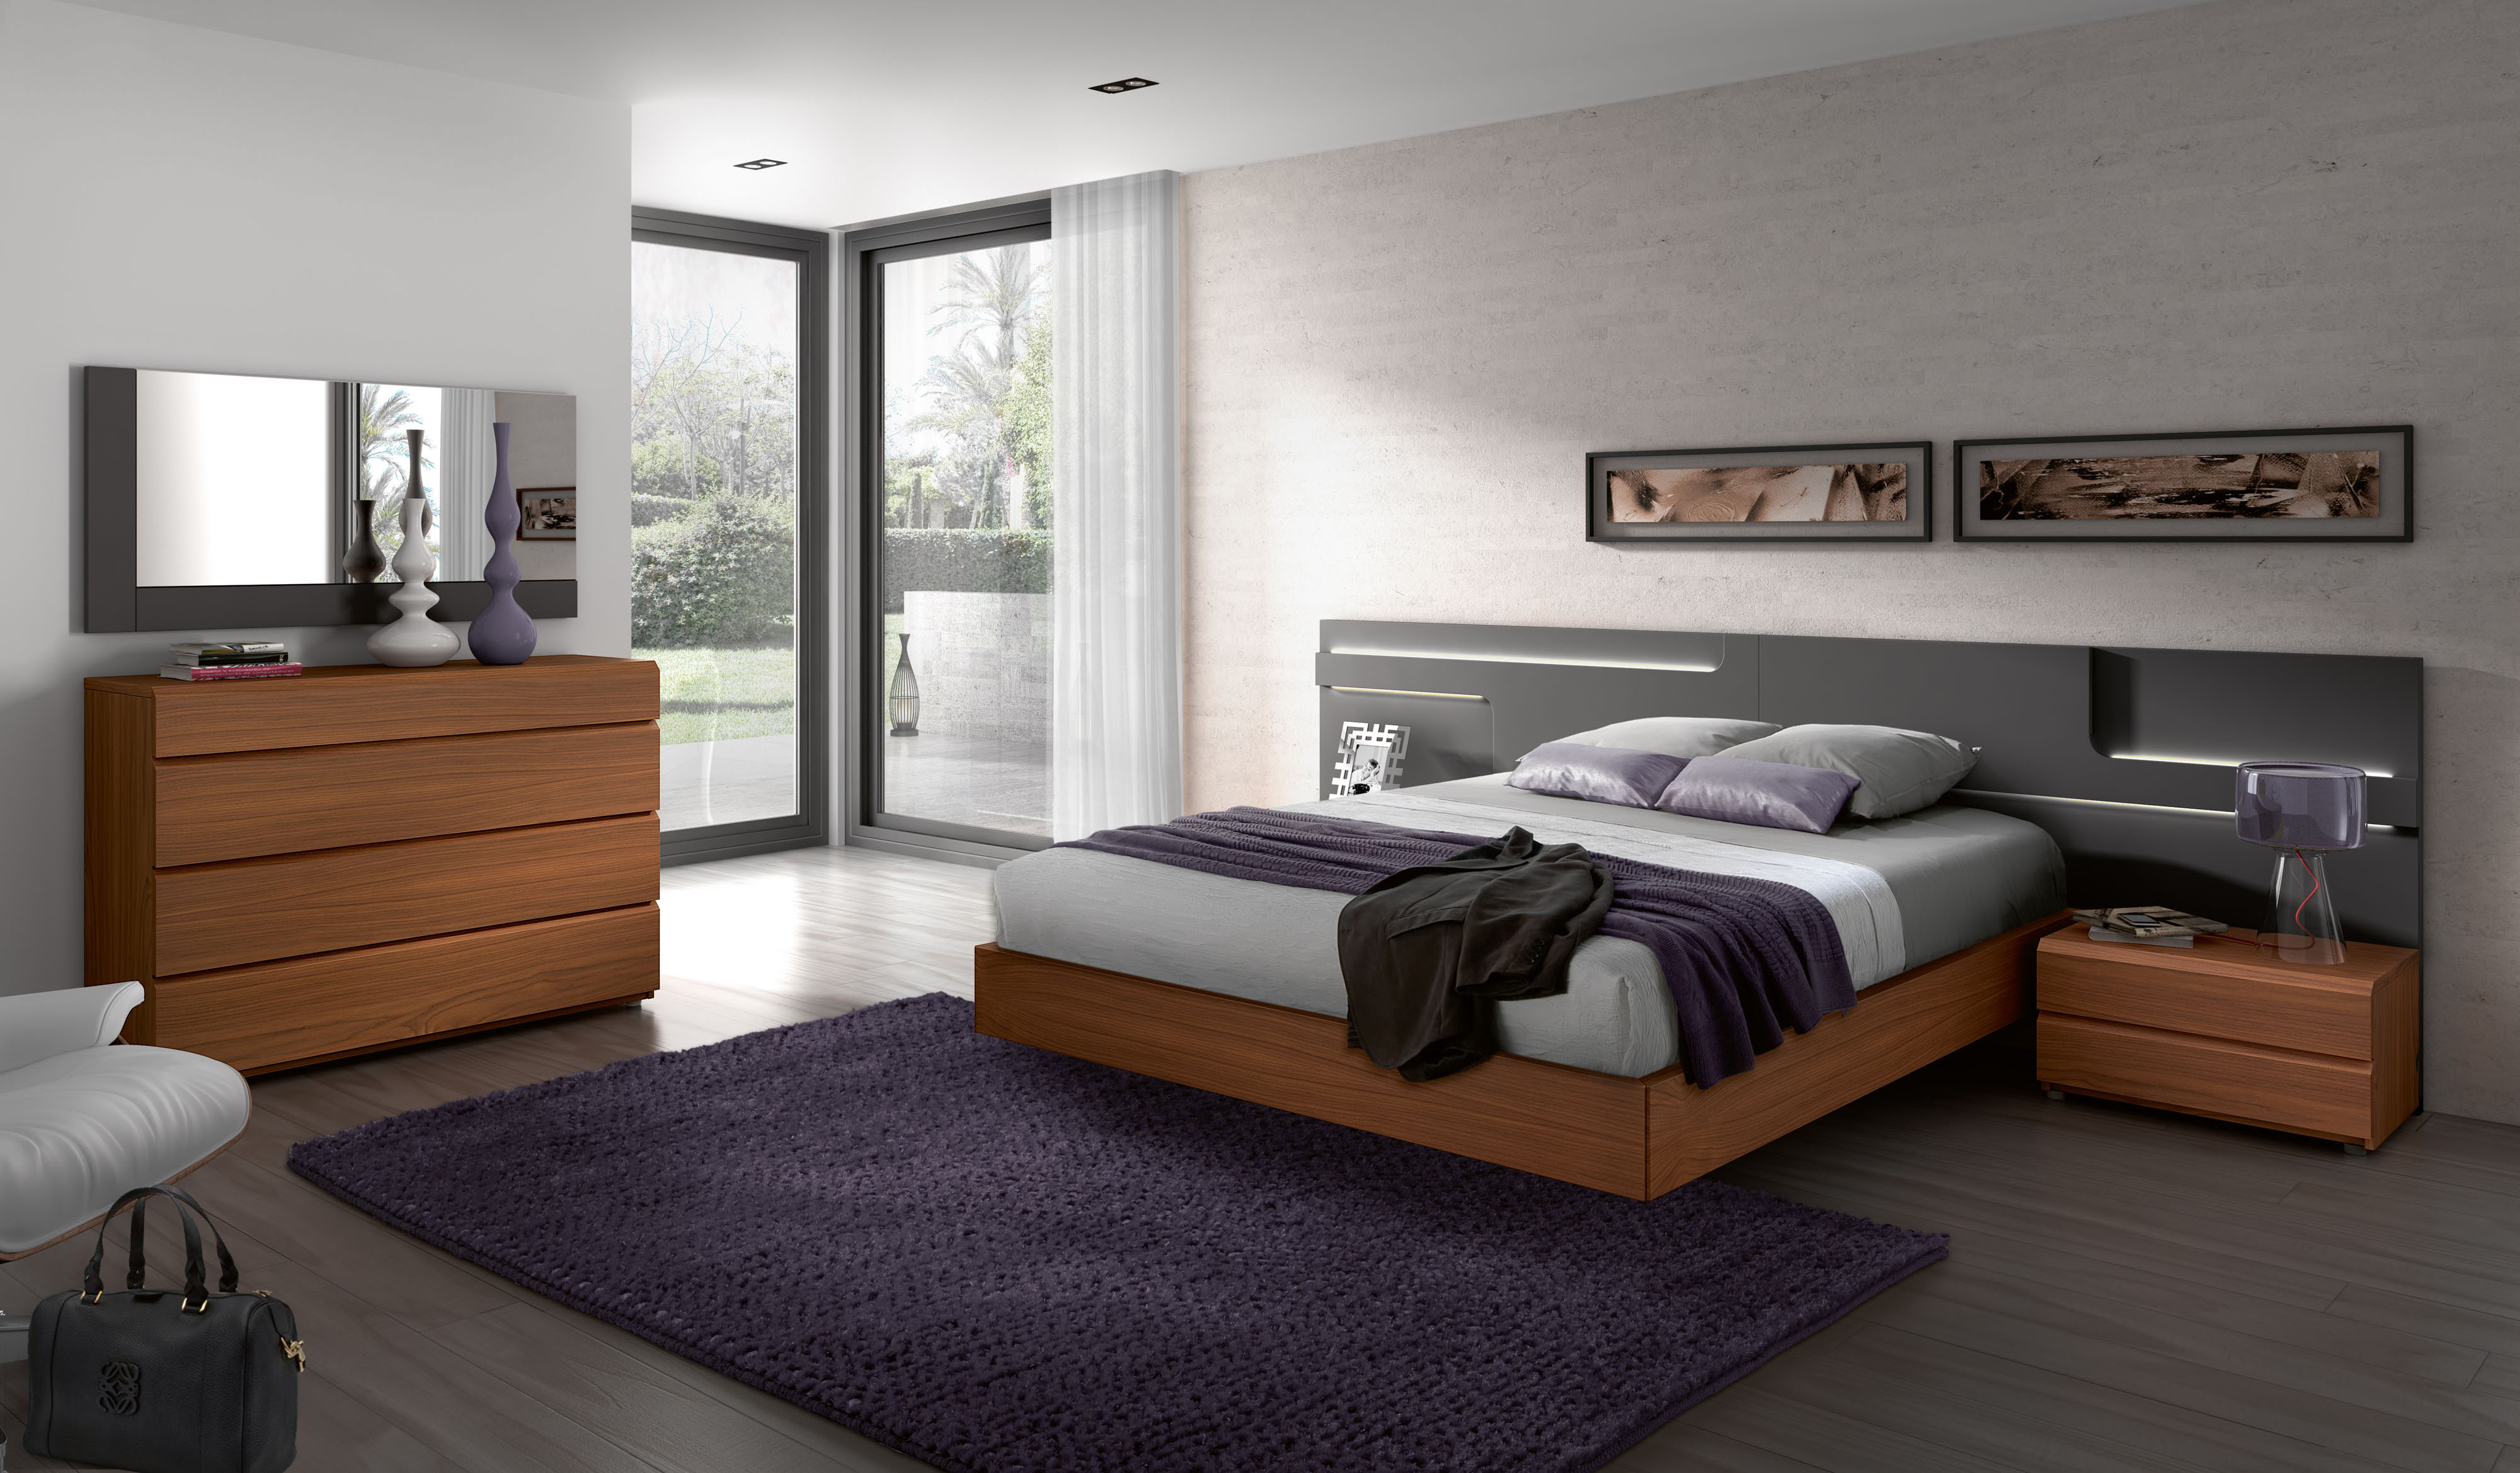 Made in Spain Wood Designer Bedroom Sets with Wide Headboard